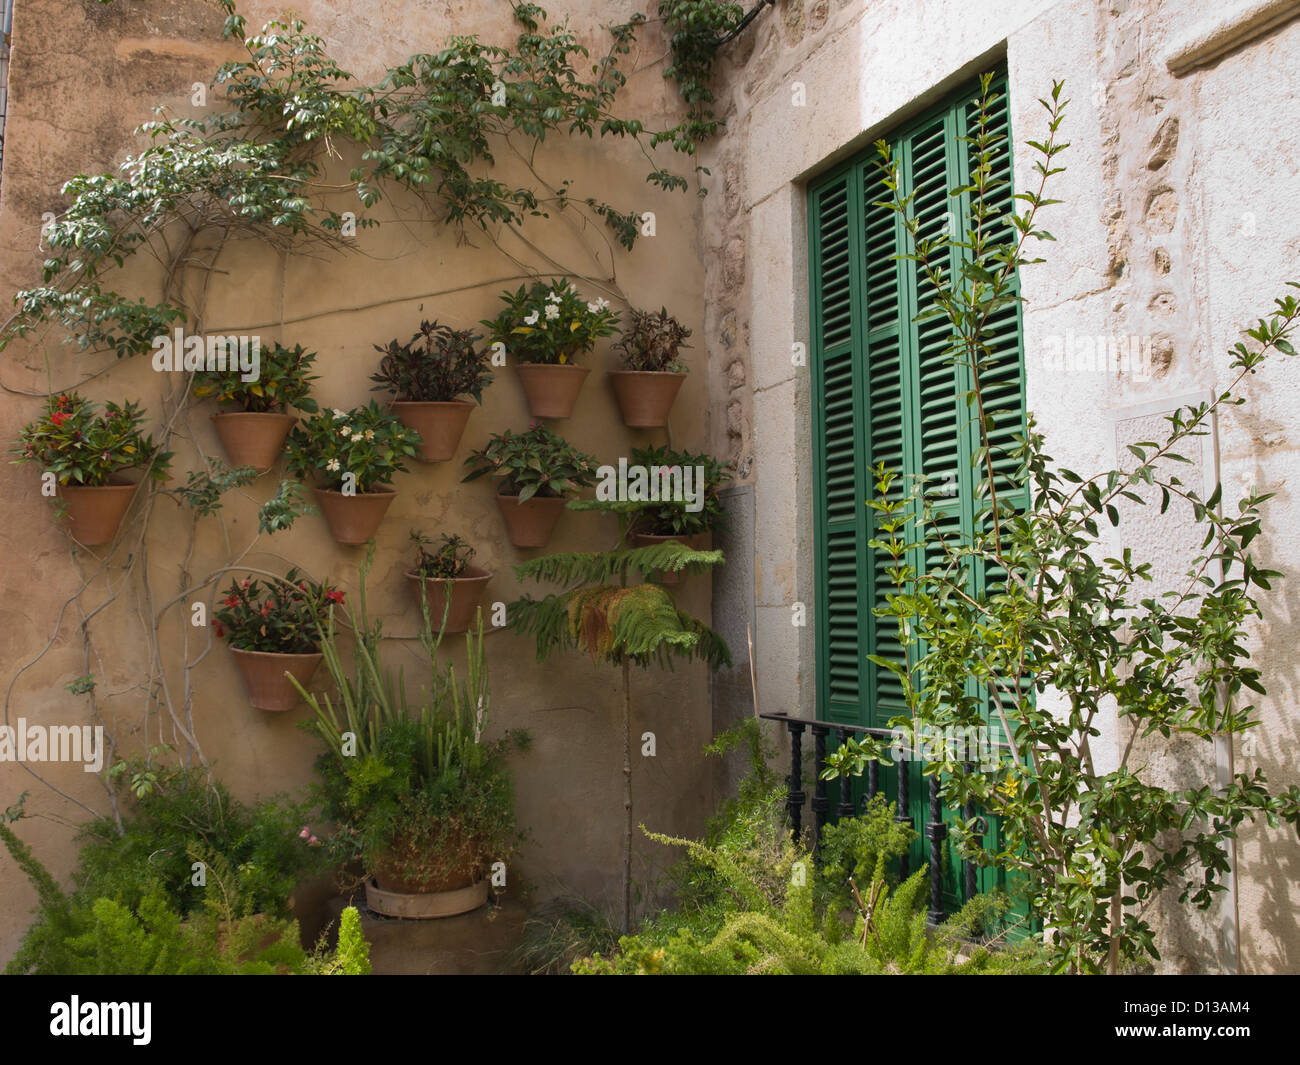 Green French balcony doors, potted plants on wall, a terracotta coloured house in Valldemossa / Valldemosa Majorca - Stock Image